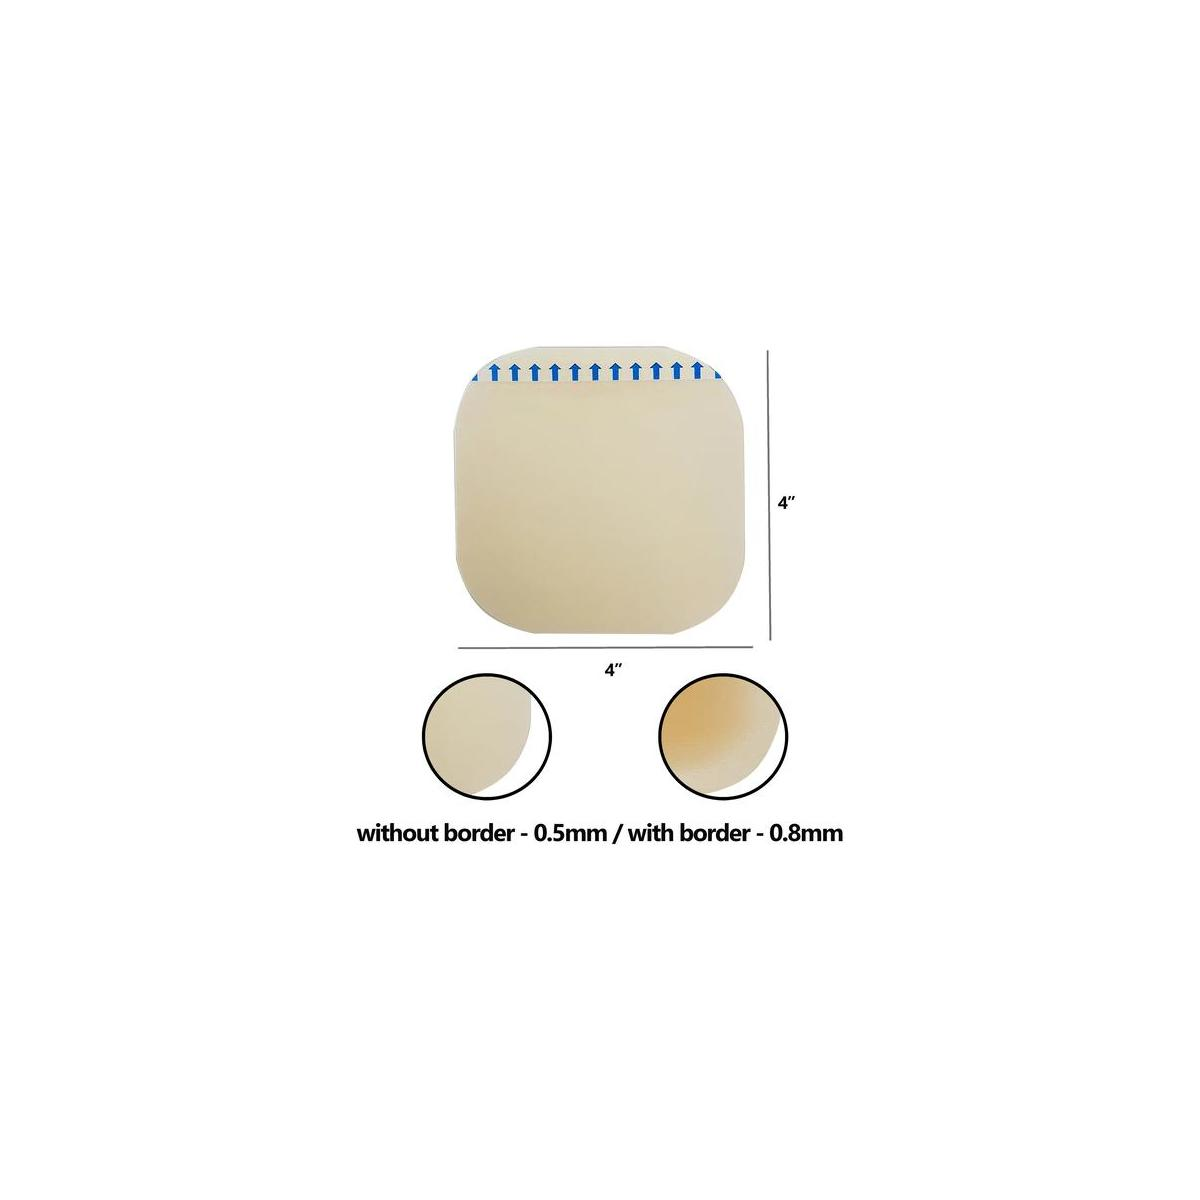 [Pack of 10] 2x2 inches Thin Hydrocolloid Dressing Without Adhesive Border – Hydrocolloidal Bandage - Bed Sore Wound Care Pads with CGF for Advanced Healing